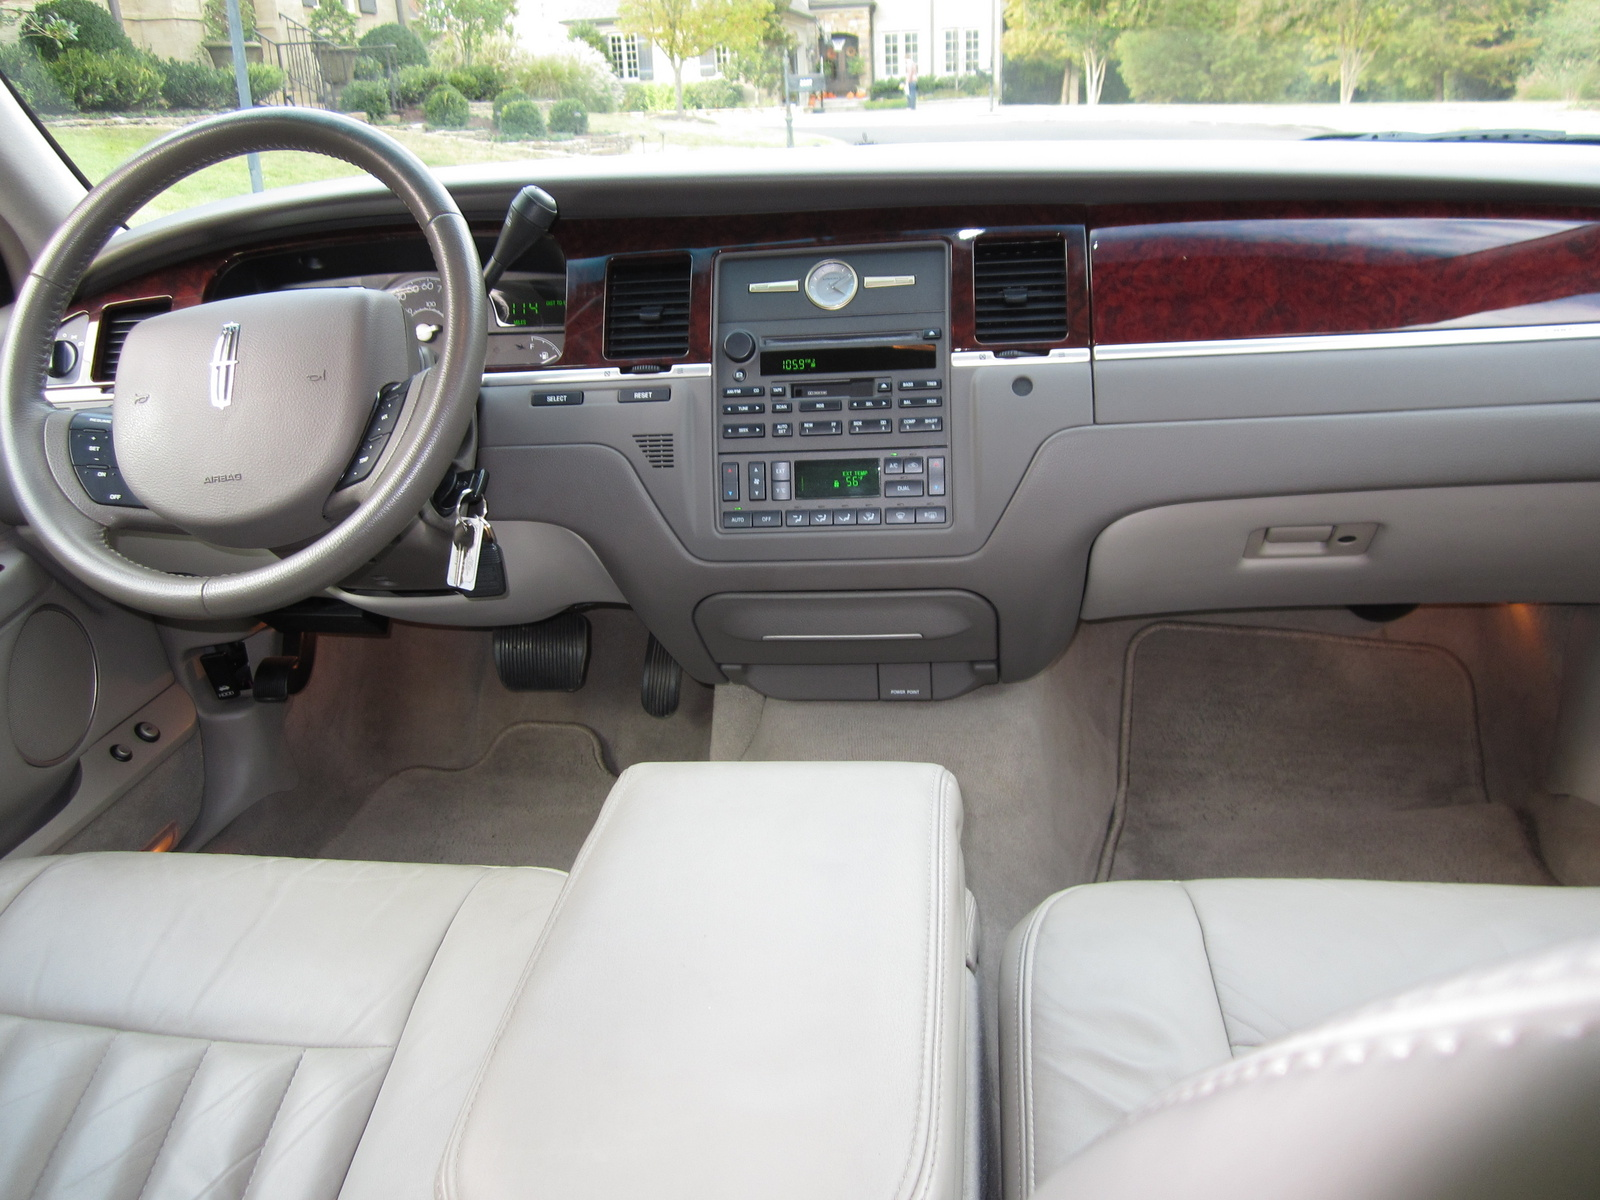 2005 lincoln town car interior pictures cargurus. Black Bedroom Furniture Sets. Home Design Ideas